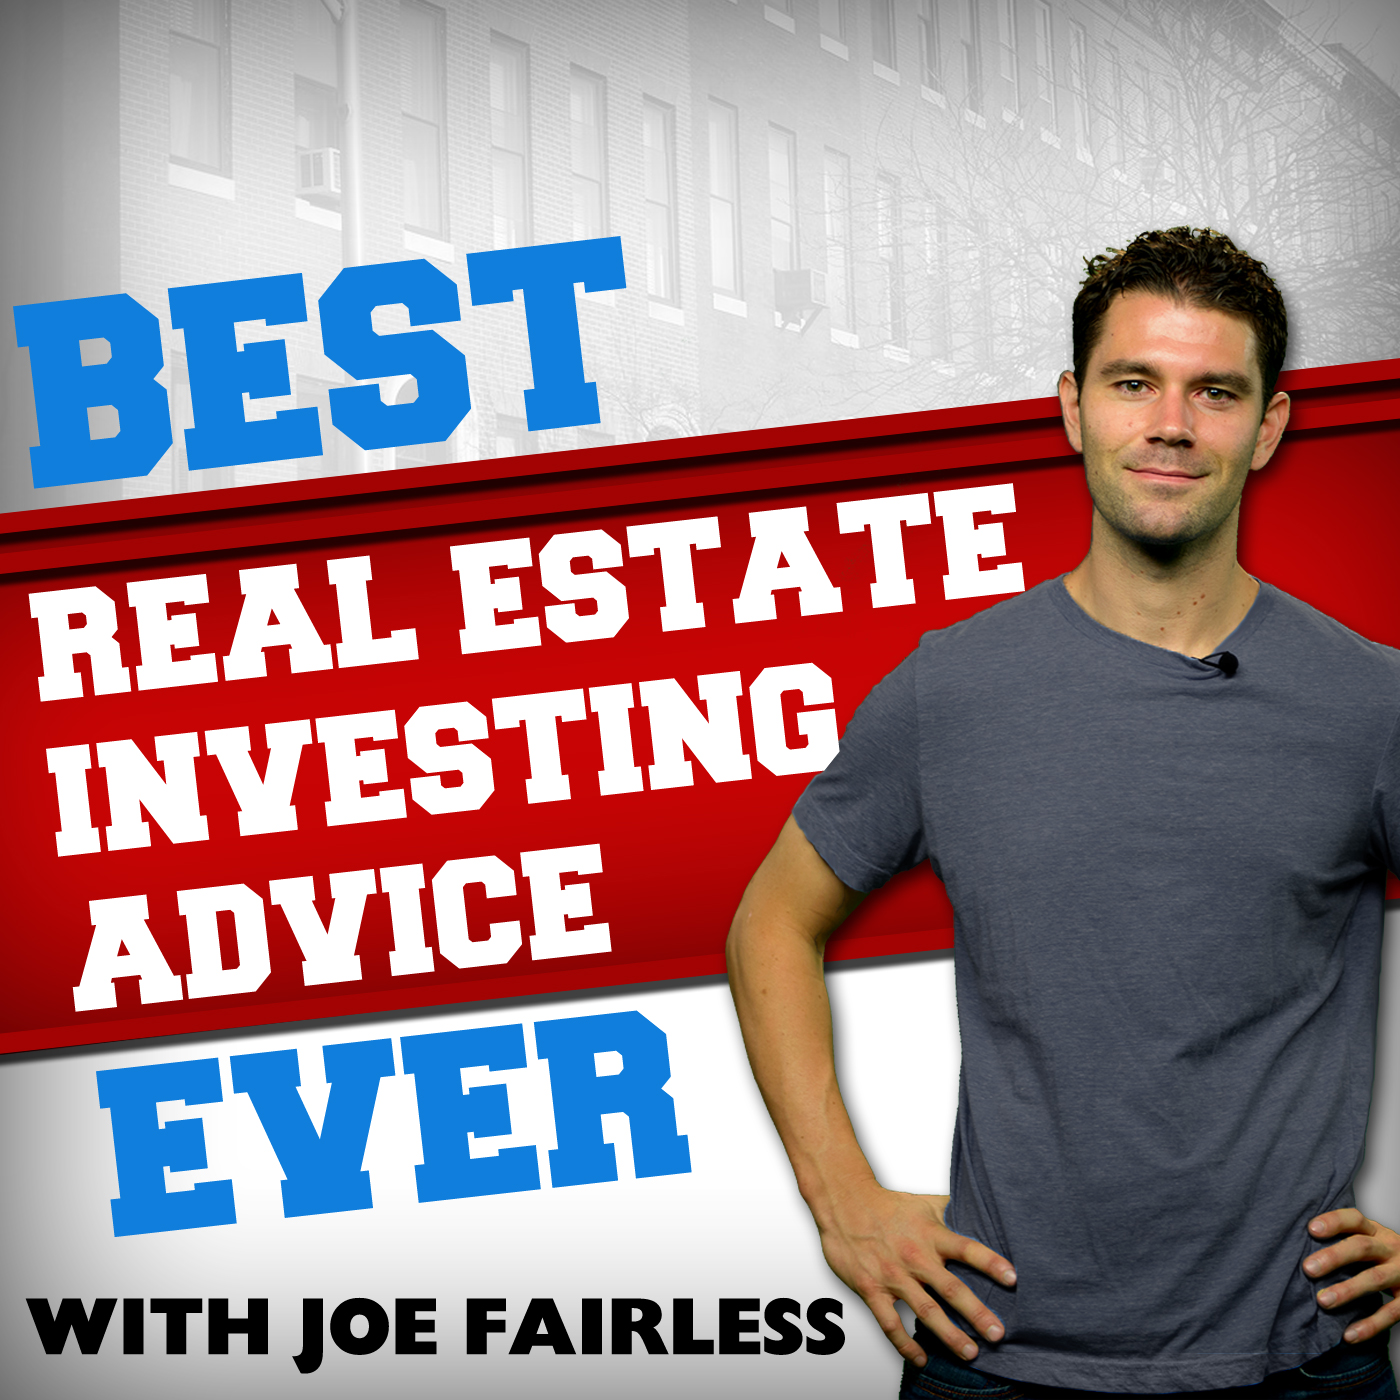 JF304: Why You Should Take a 15 Year Loan Instead of a 30 Year Loan